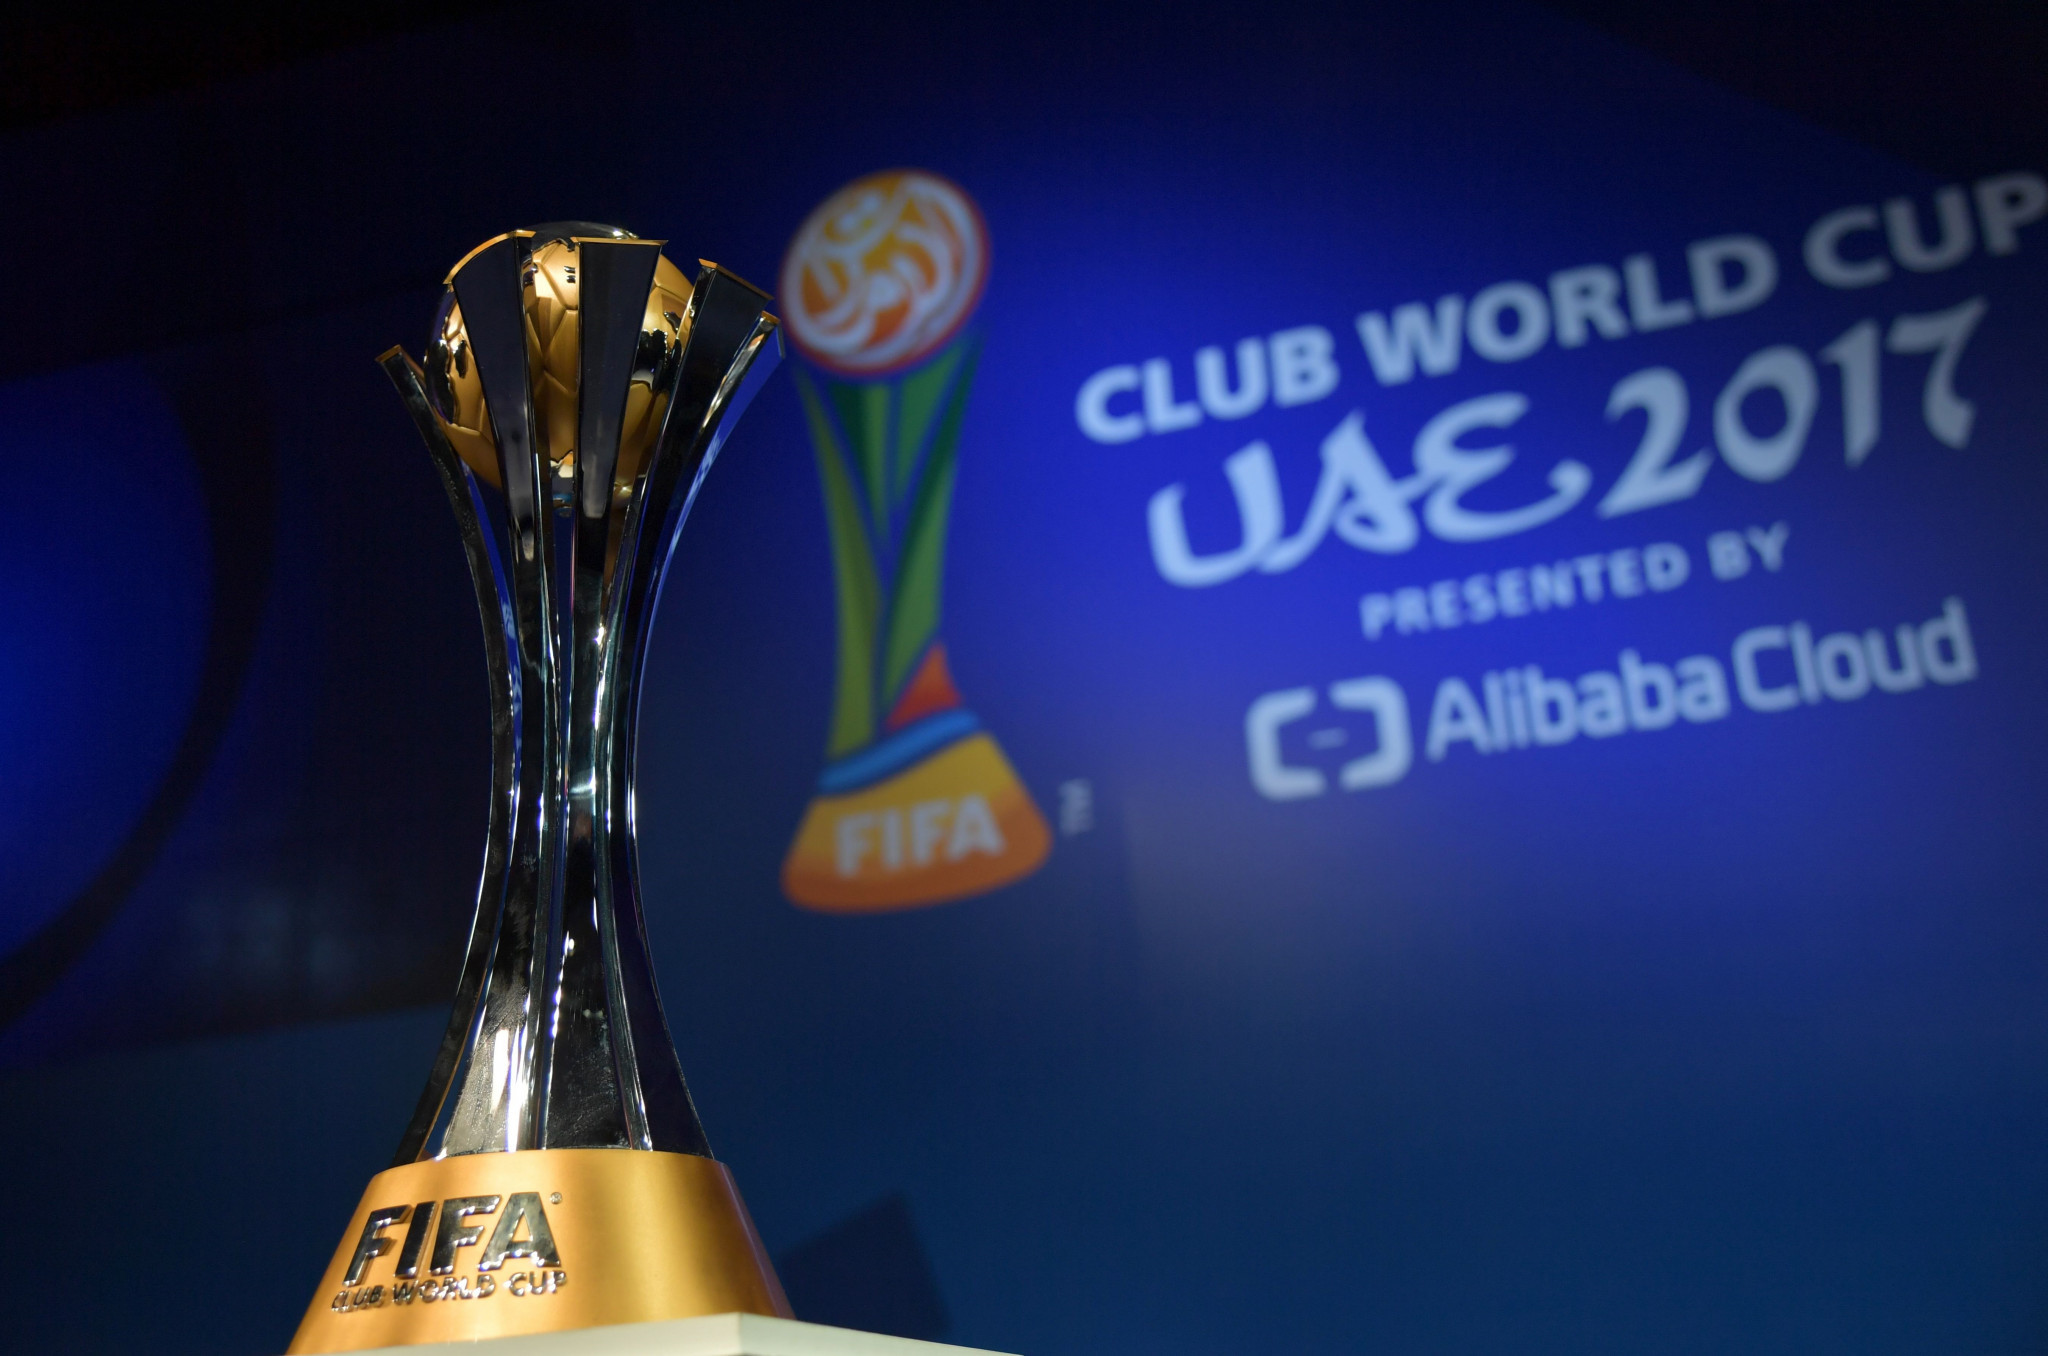 """UAE aims to become """"central hub"""" for events after winning FIFA Club World Cup rights"""